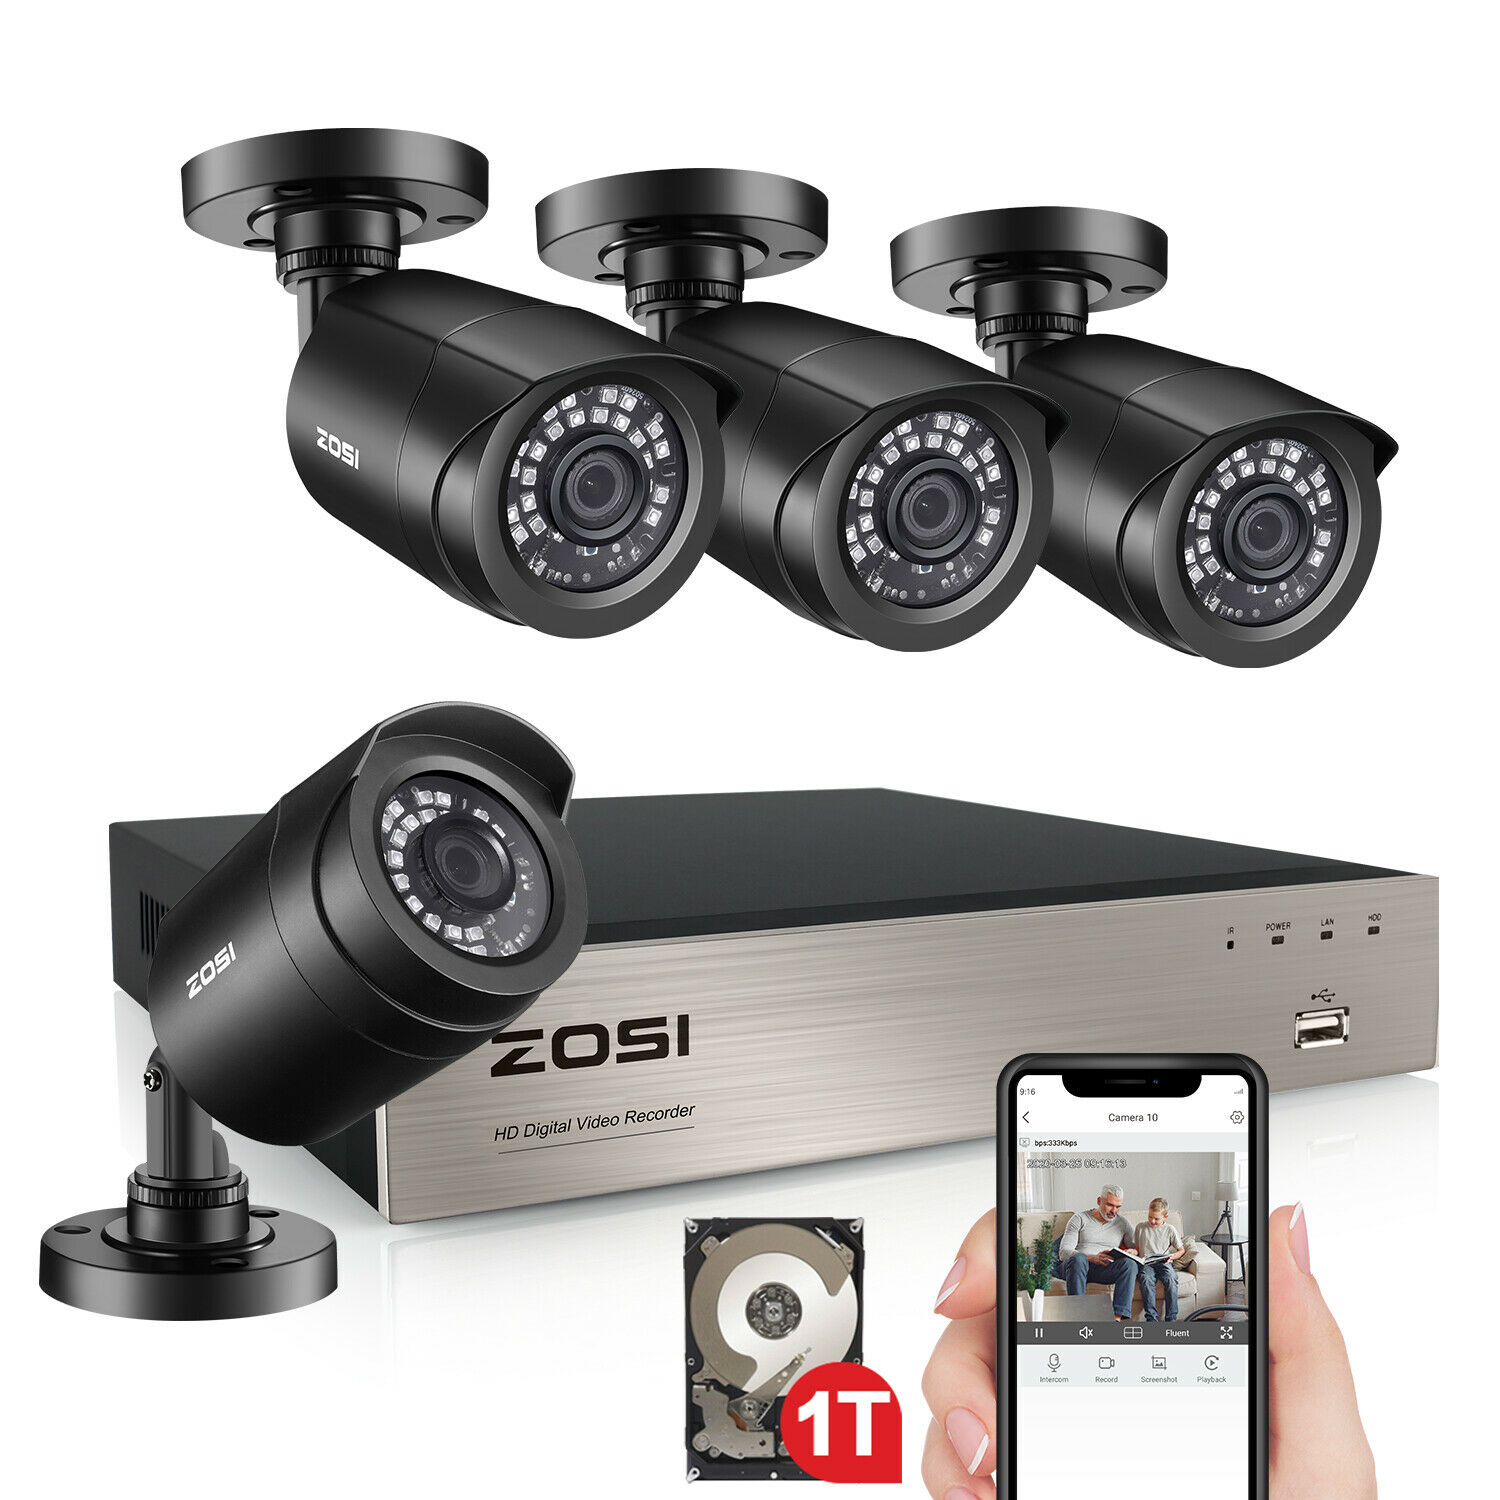 ZOSI 5MP Lite 8CH DVR 1080P Outdoor Security Camera System with Hard Drive 1TB. Available Now for 170.99